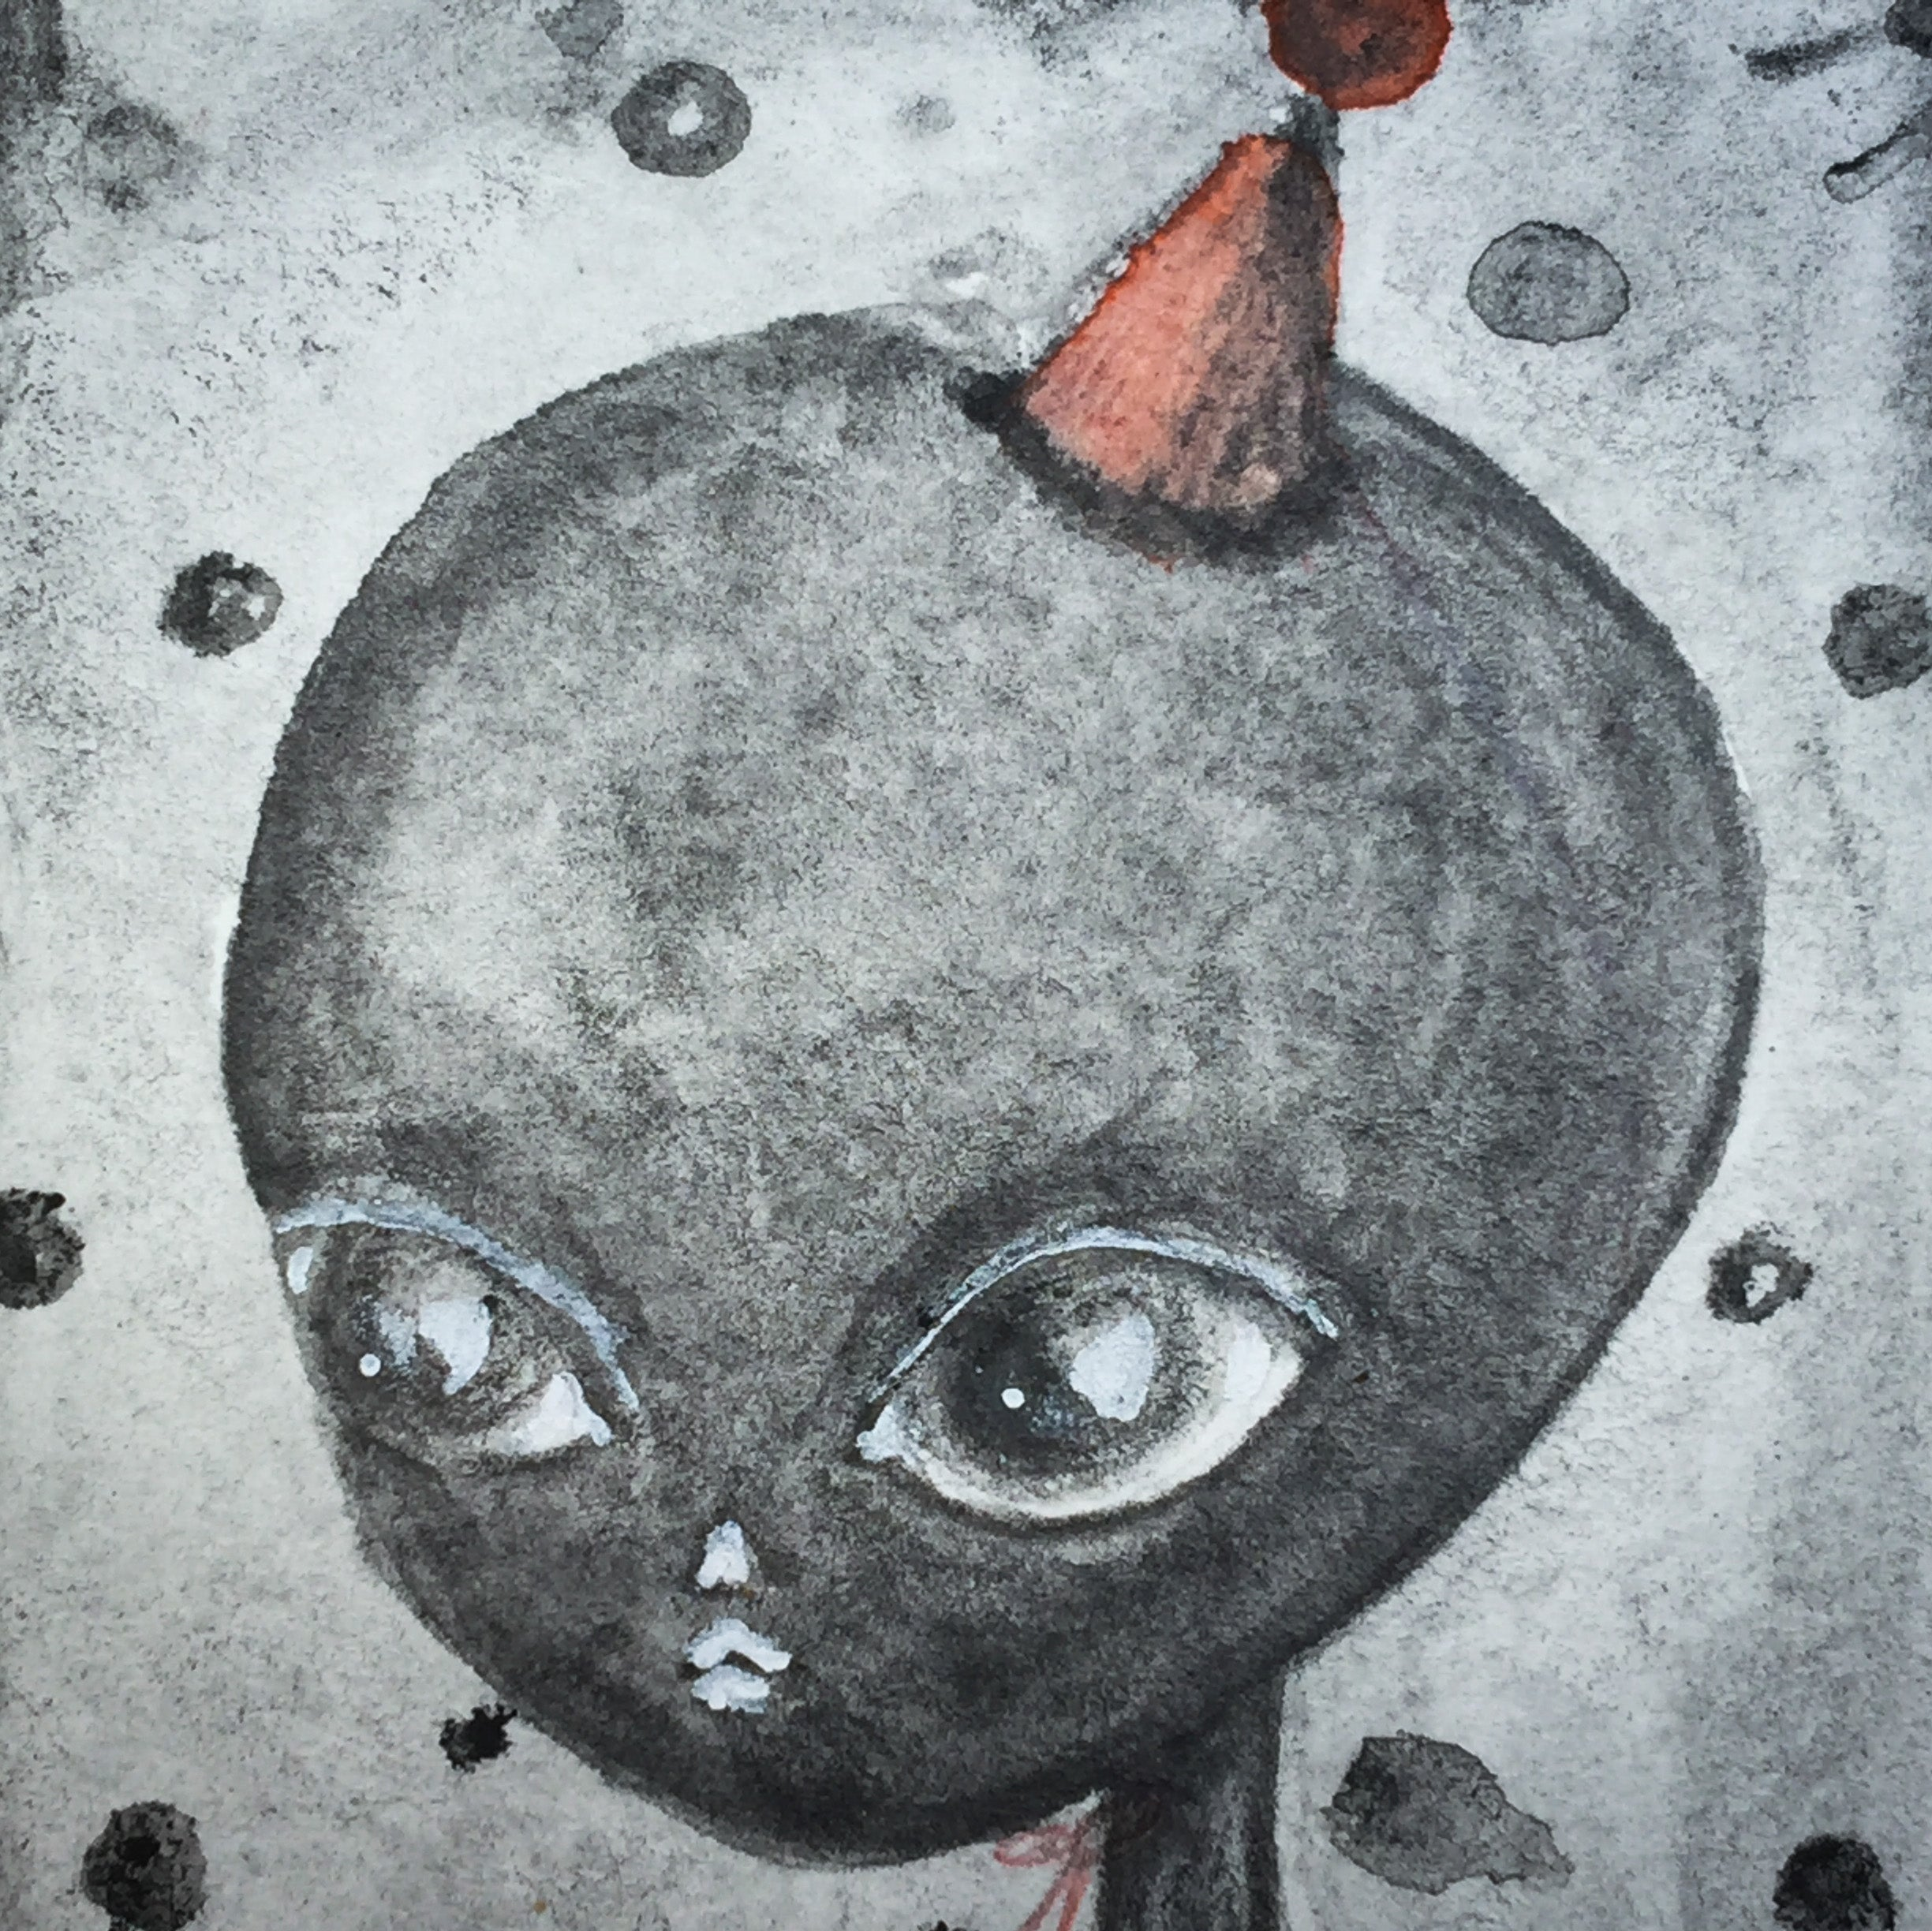 THE ALIEN, Original Art by Danita Art